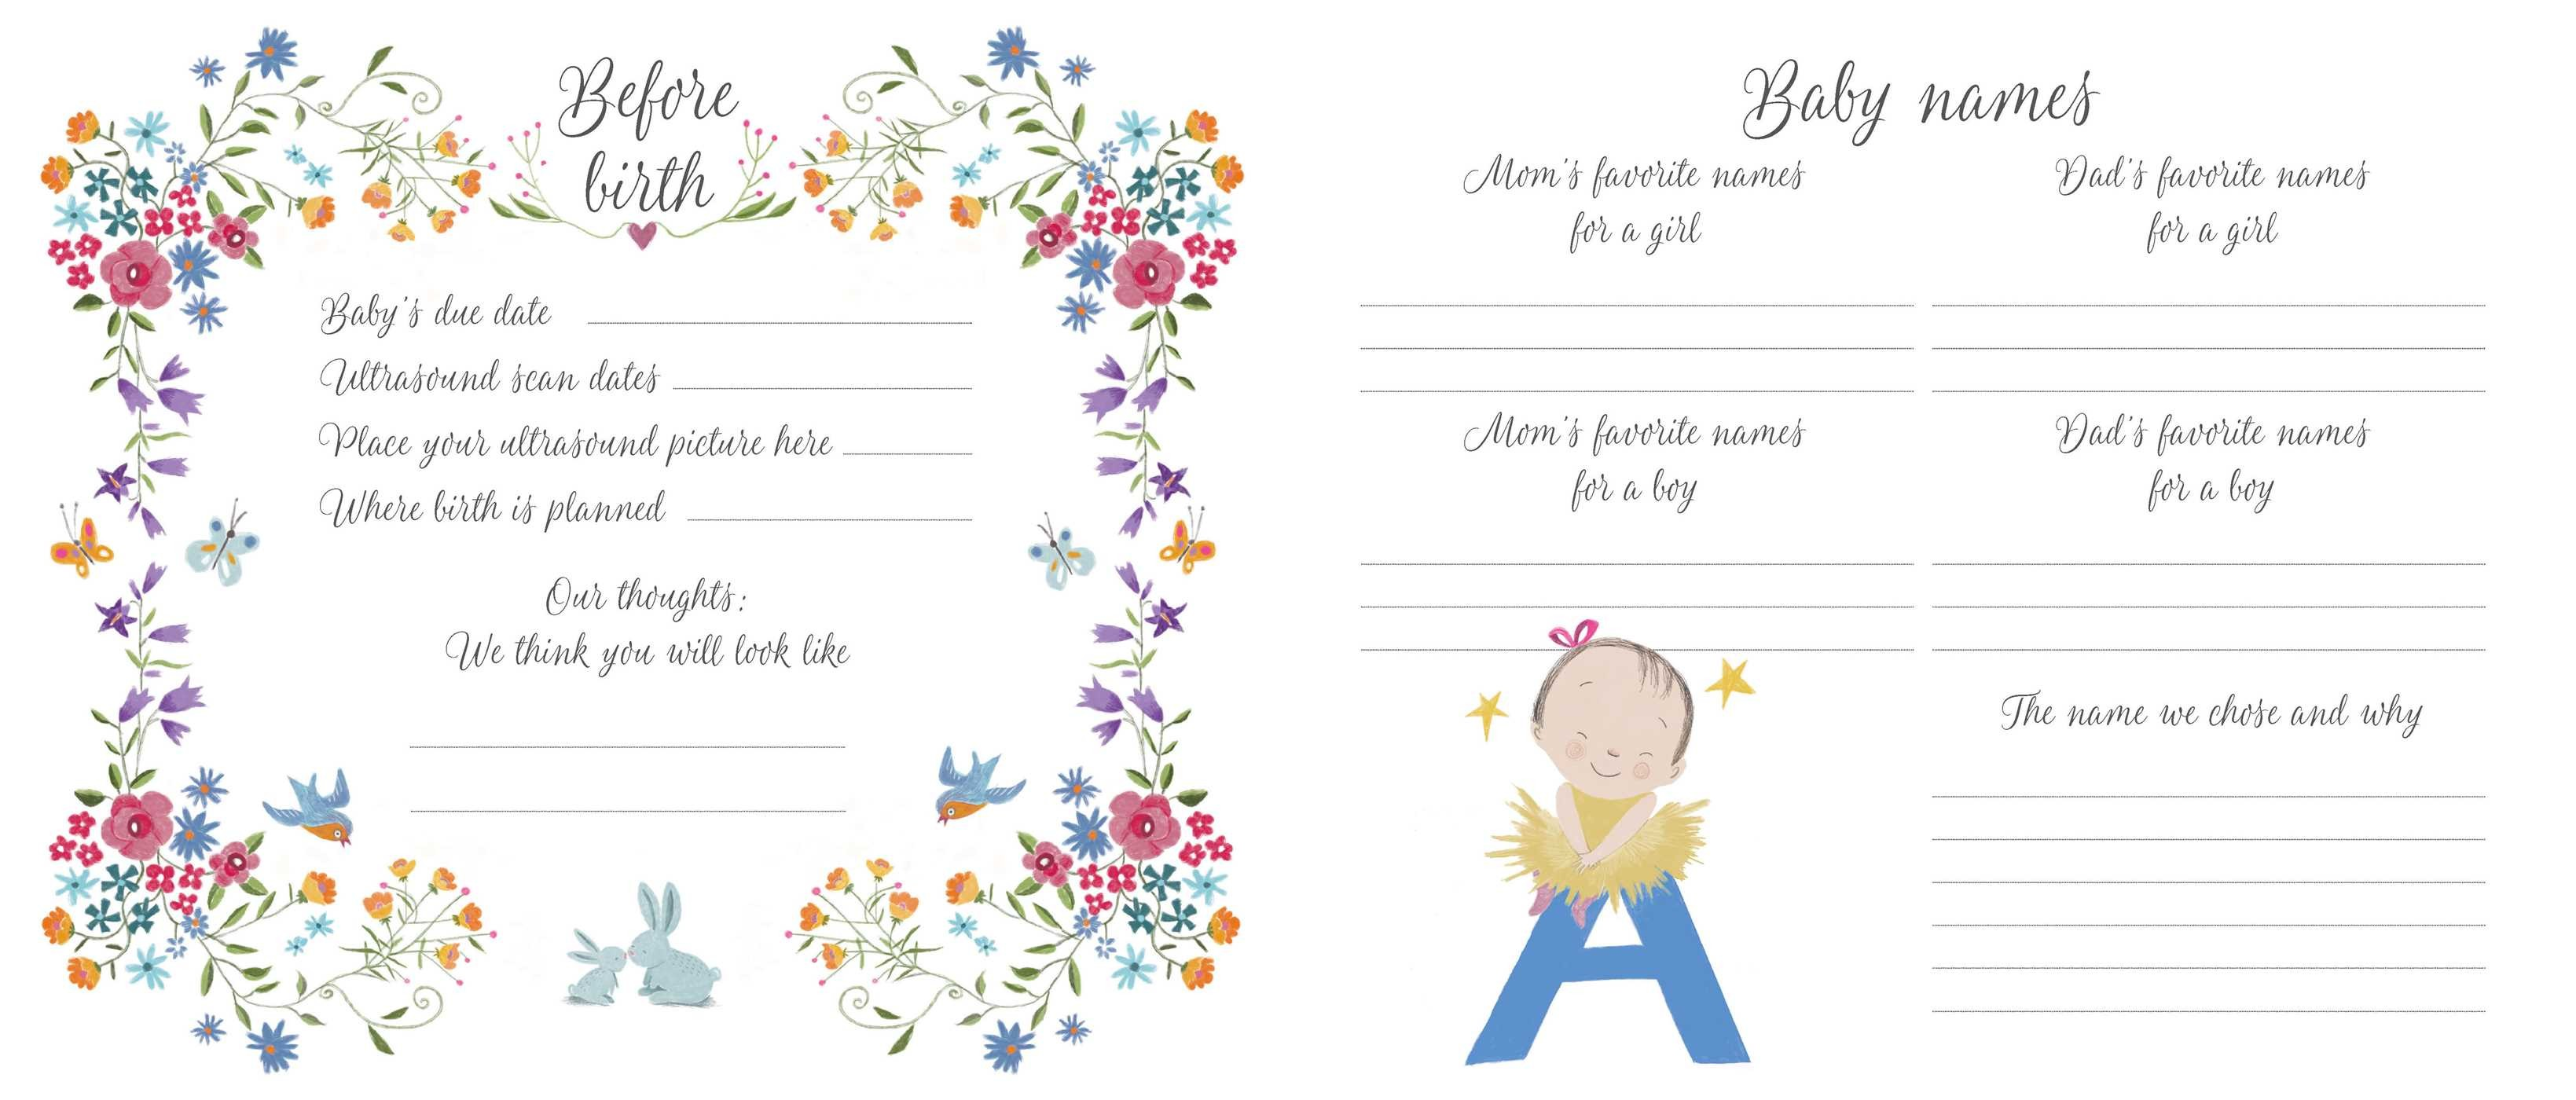 my baby record album book by bluestreak books official publisher